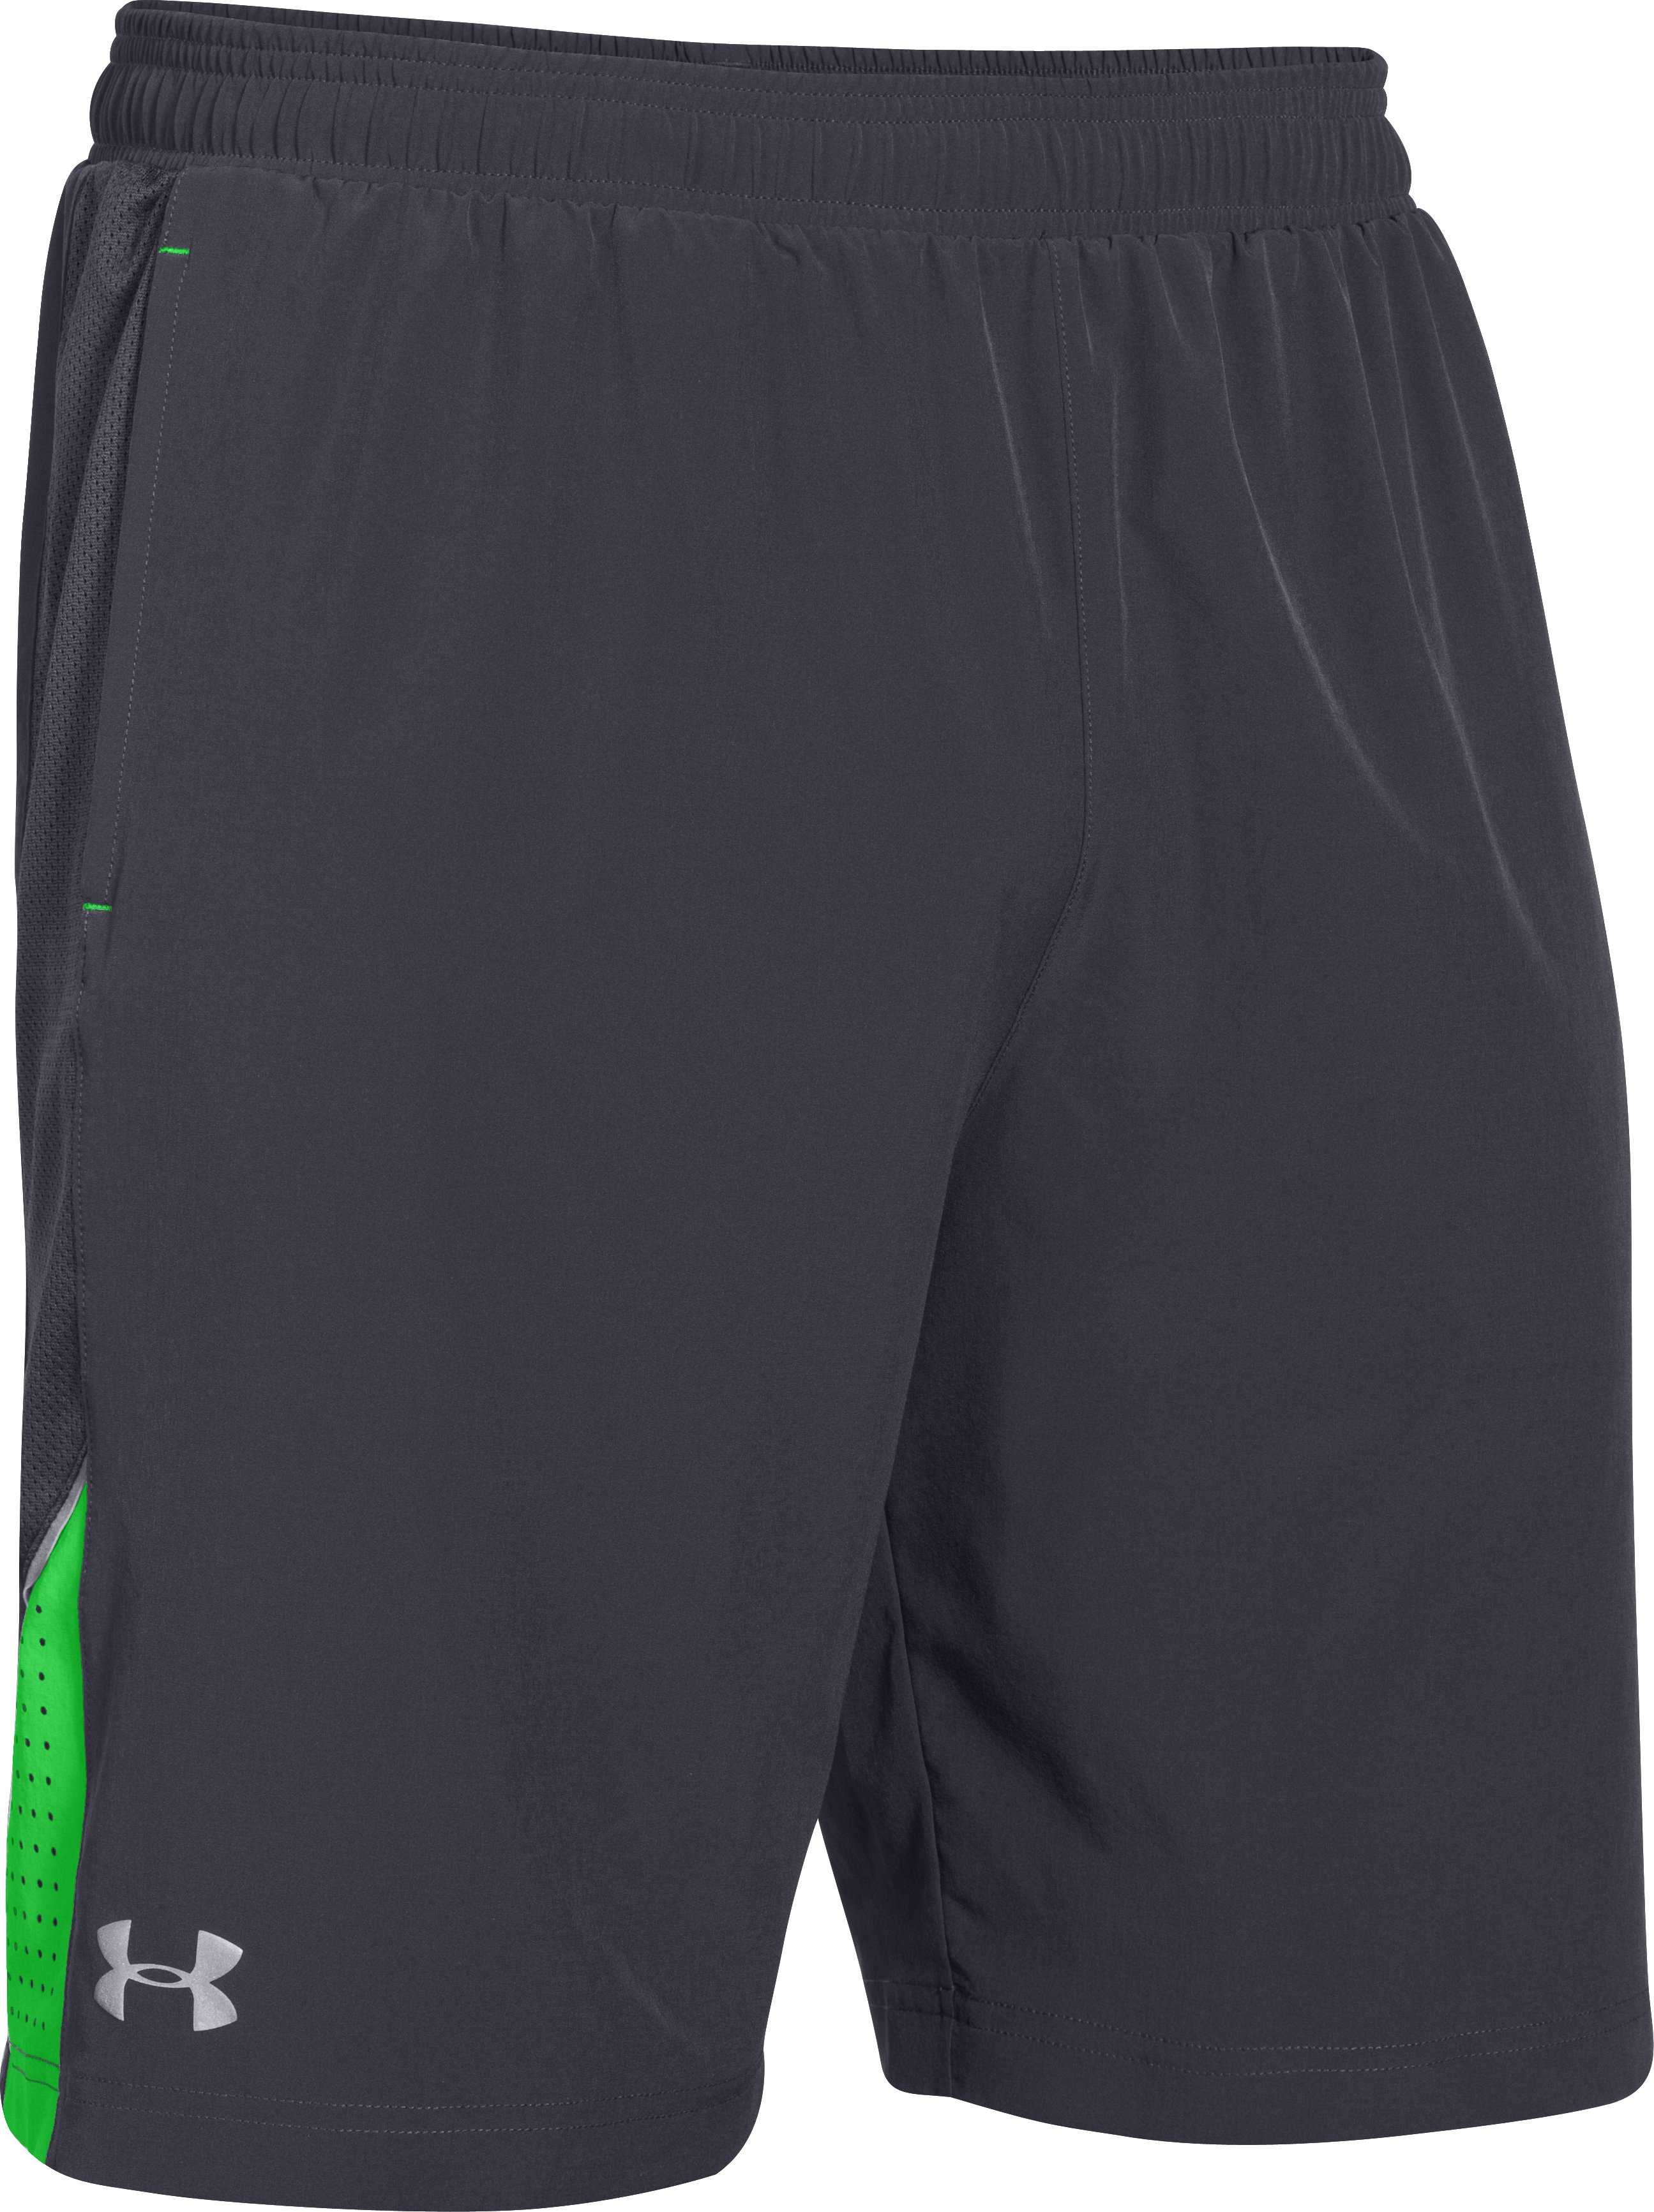 "Men's UA Launch Stretch Woven 9"" Run Shorts, STEALTH GRAY"